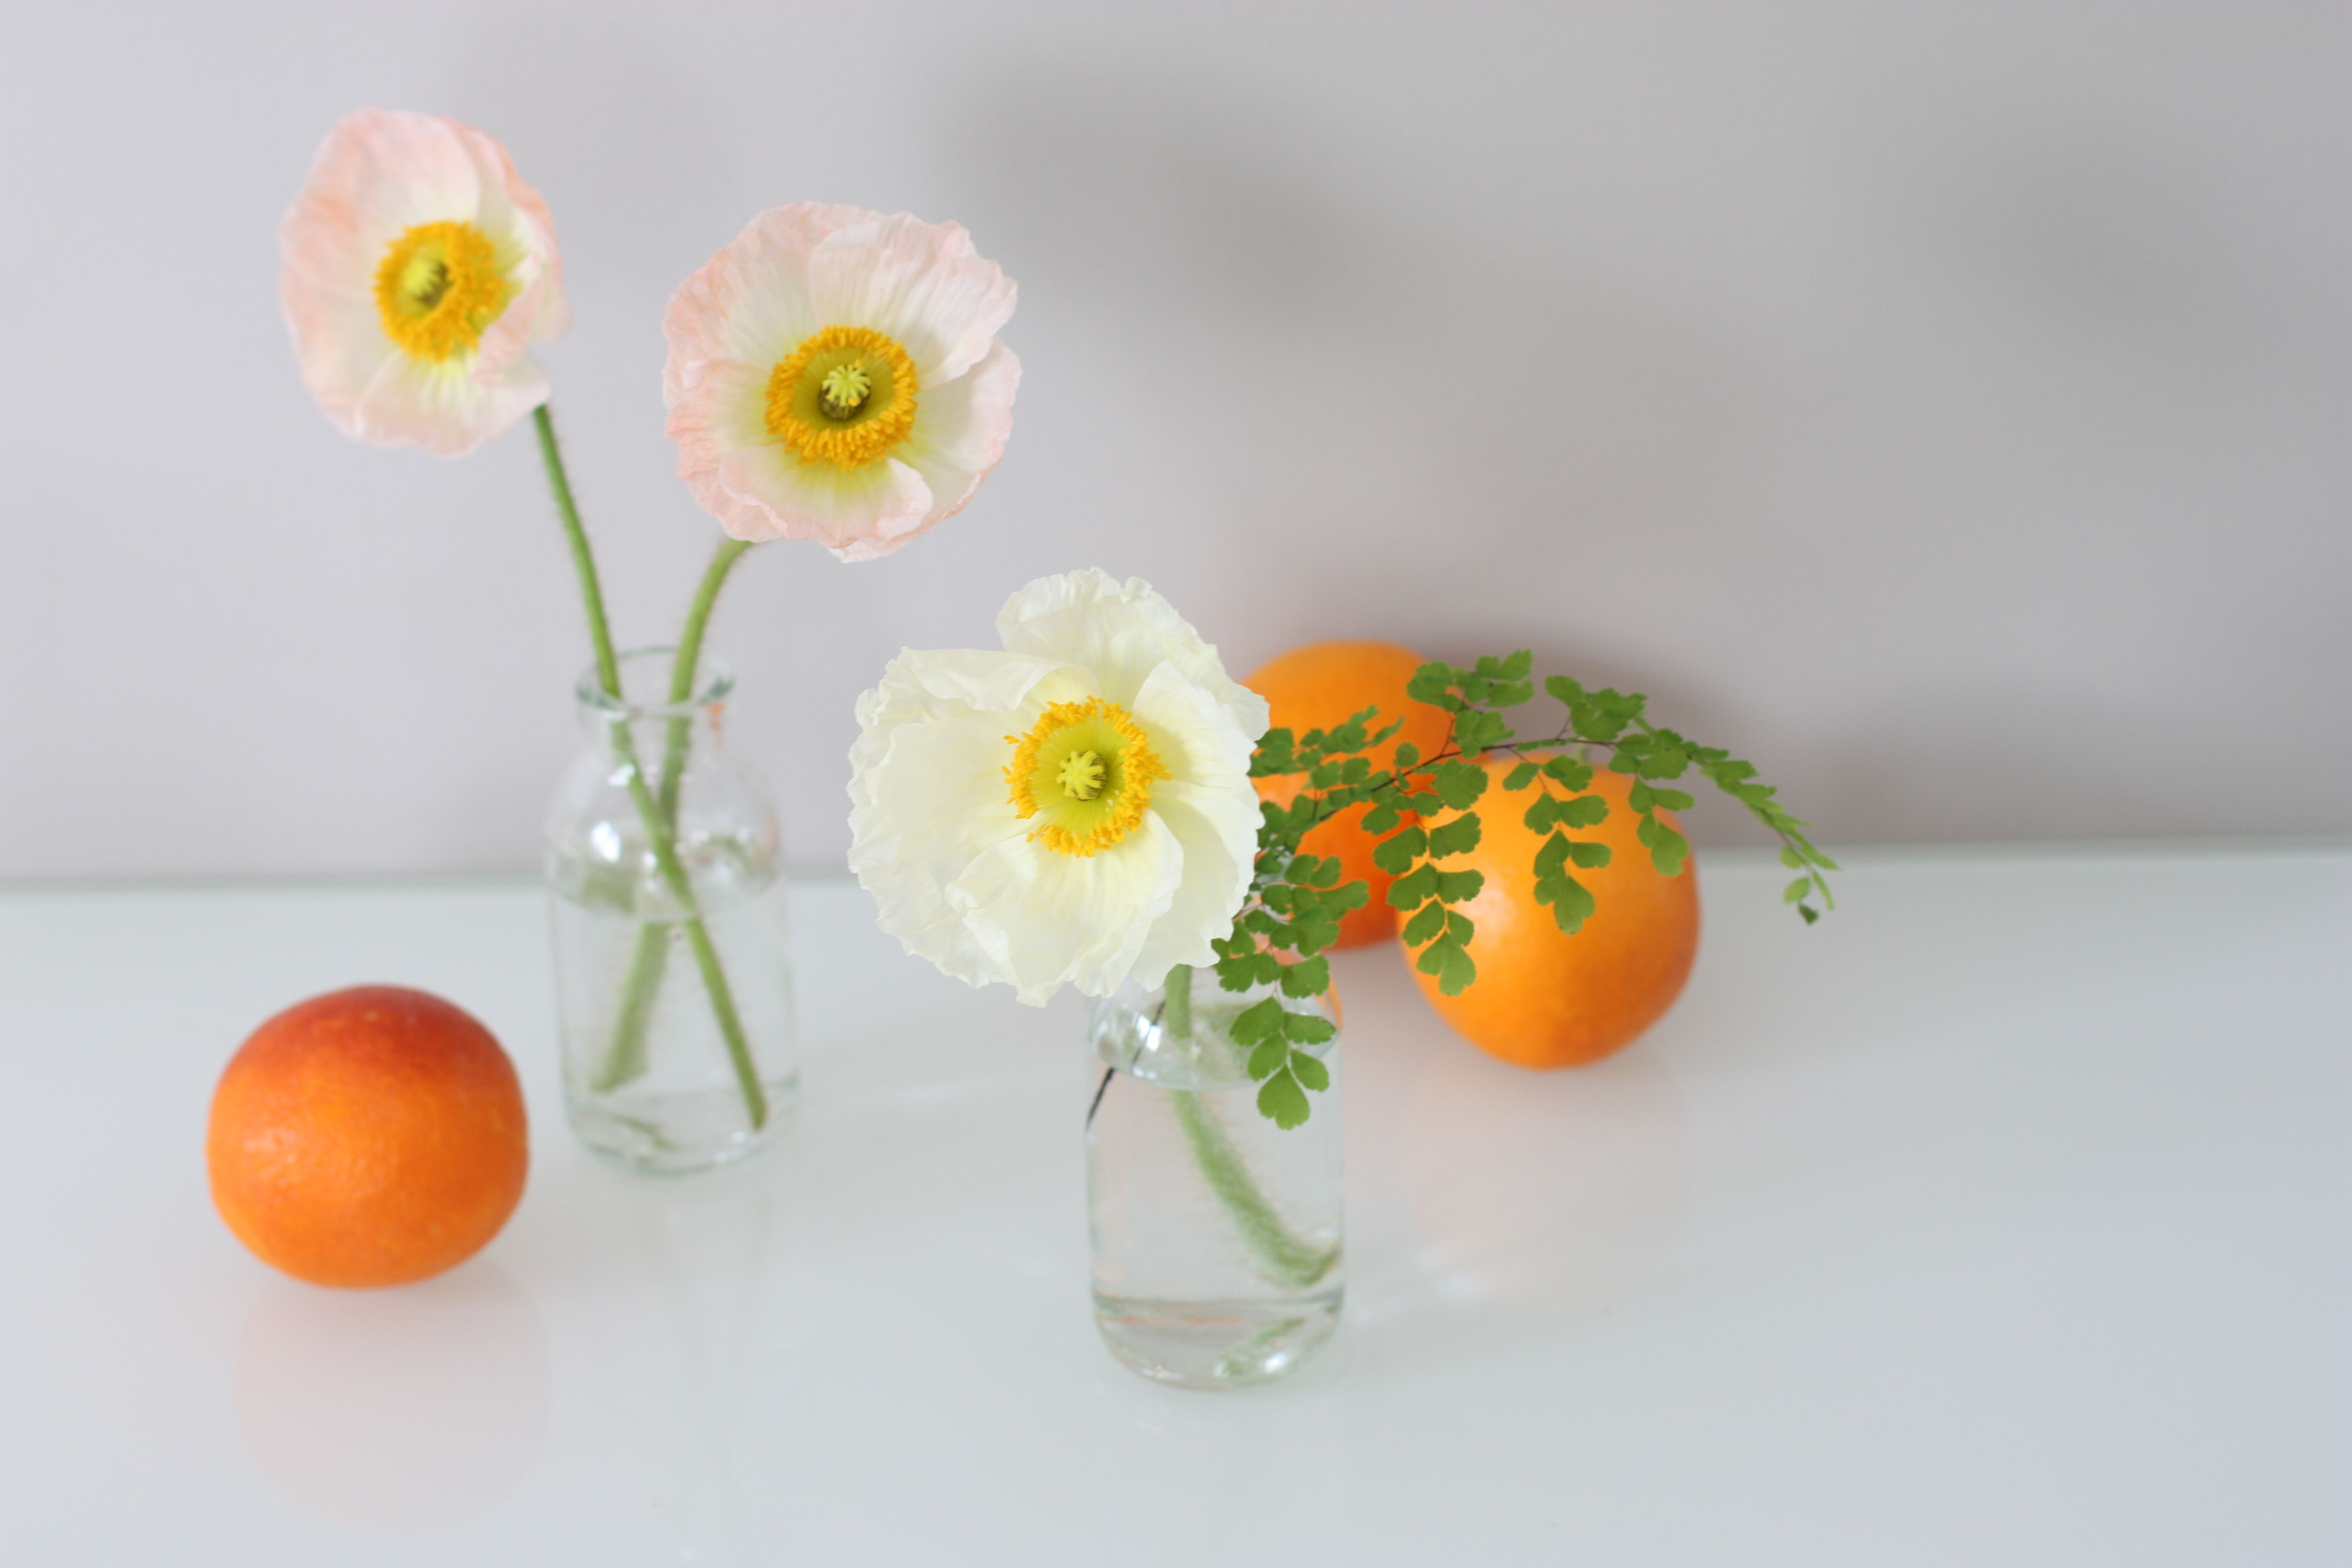 Wedding decorations yellow and gray  How about pastel peach poppies oranges u simple vases for your